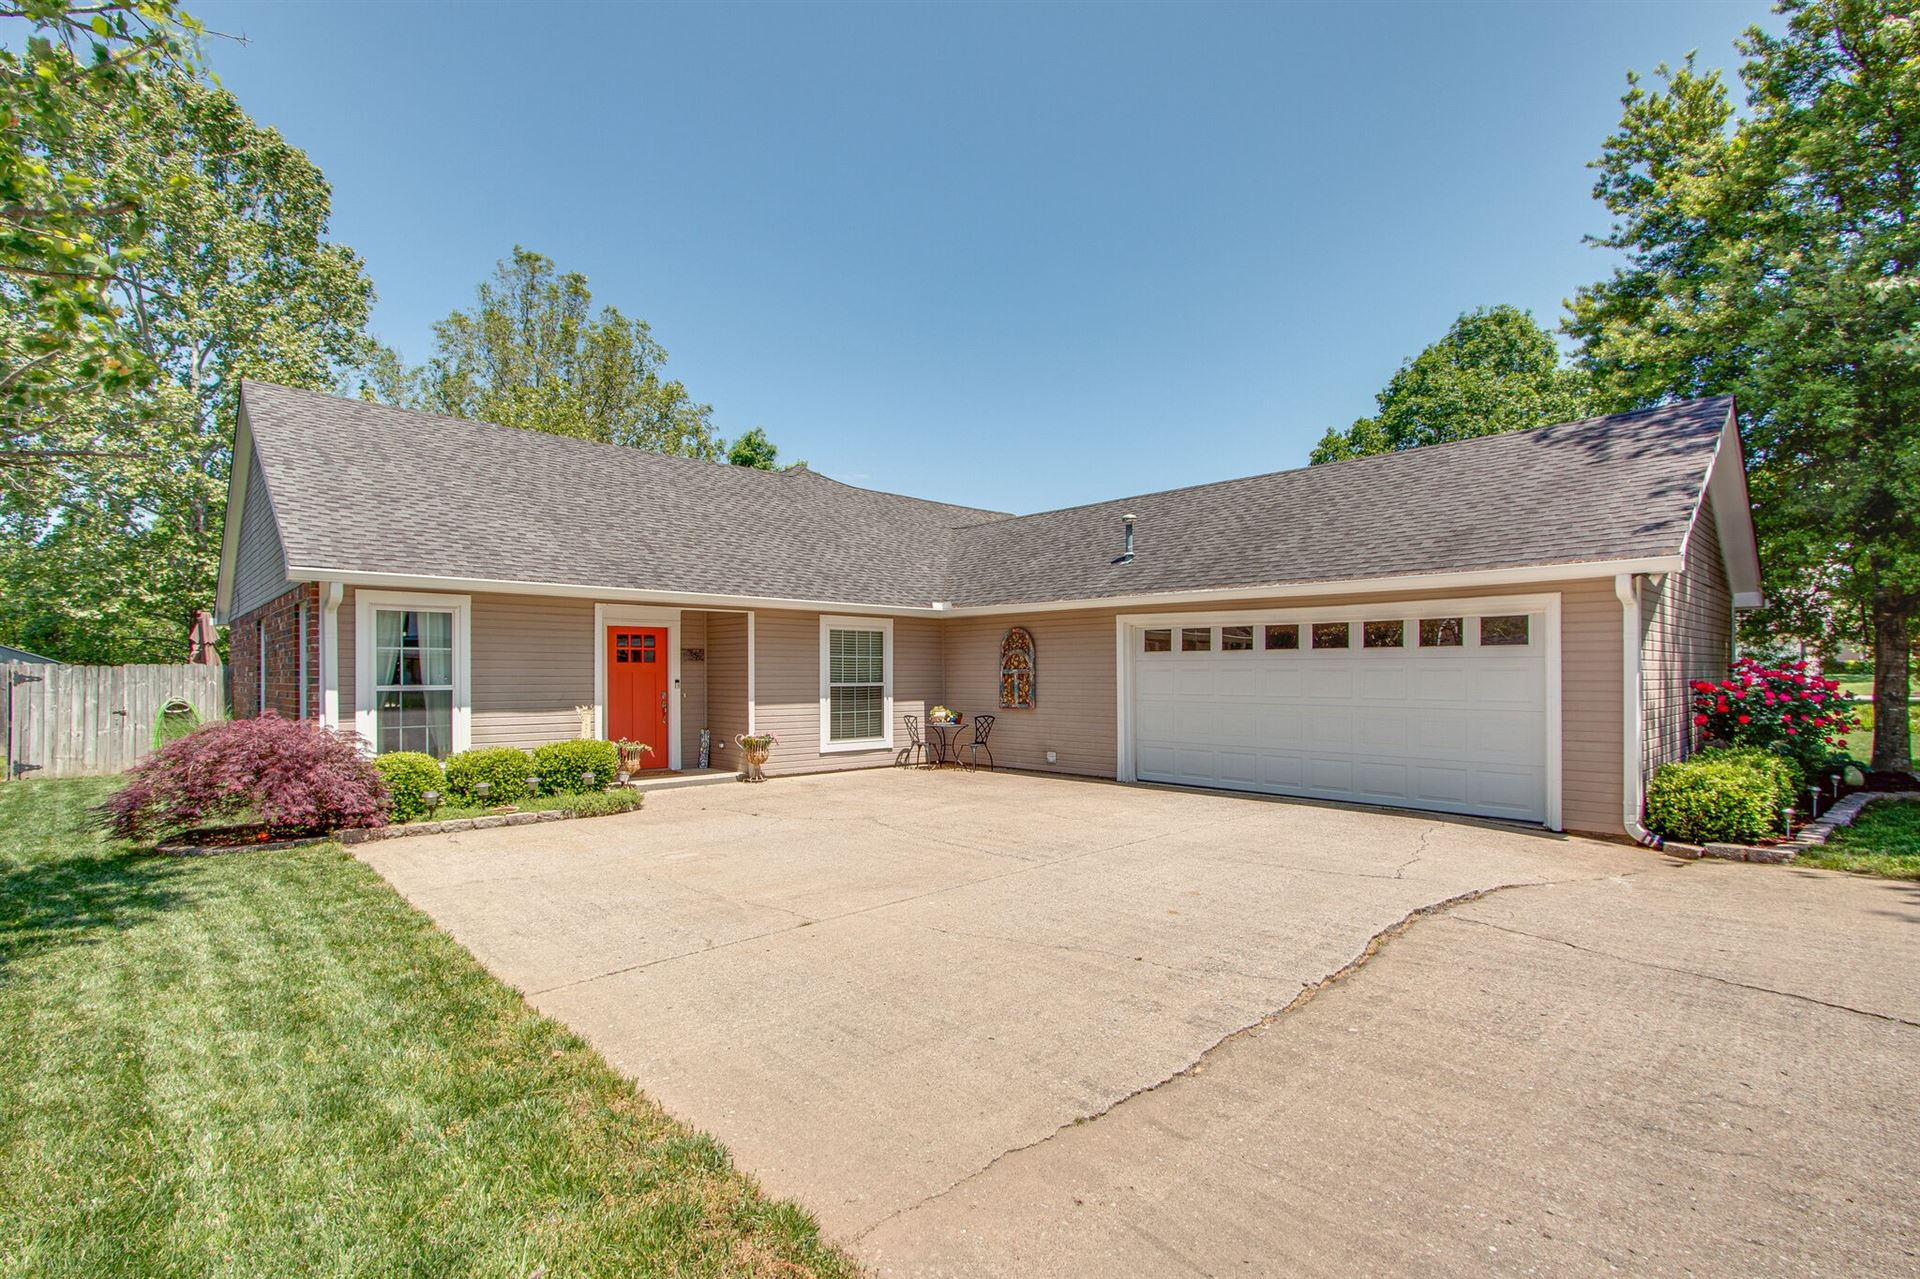 Photo of 1046 Huntsman Circle, Franklin, TN 37064 (MLS # 2253355)